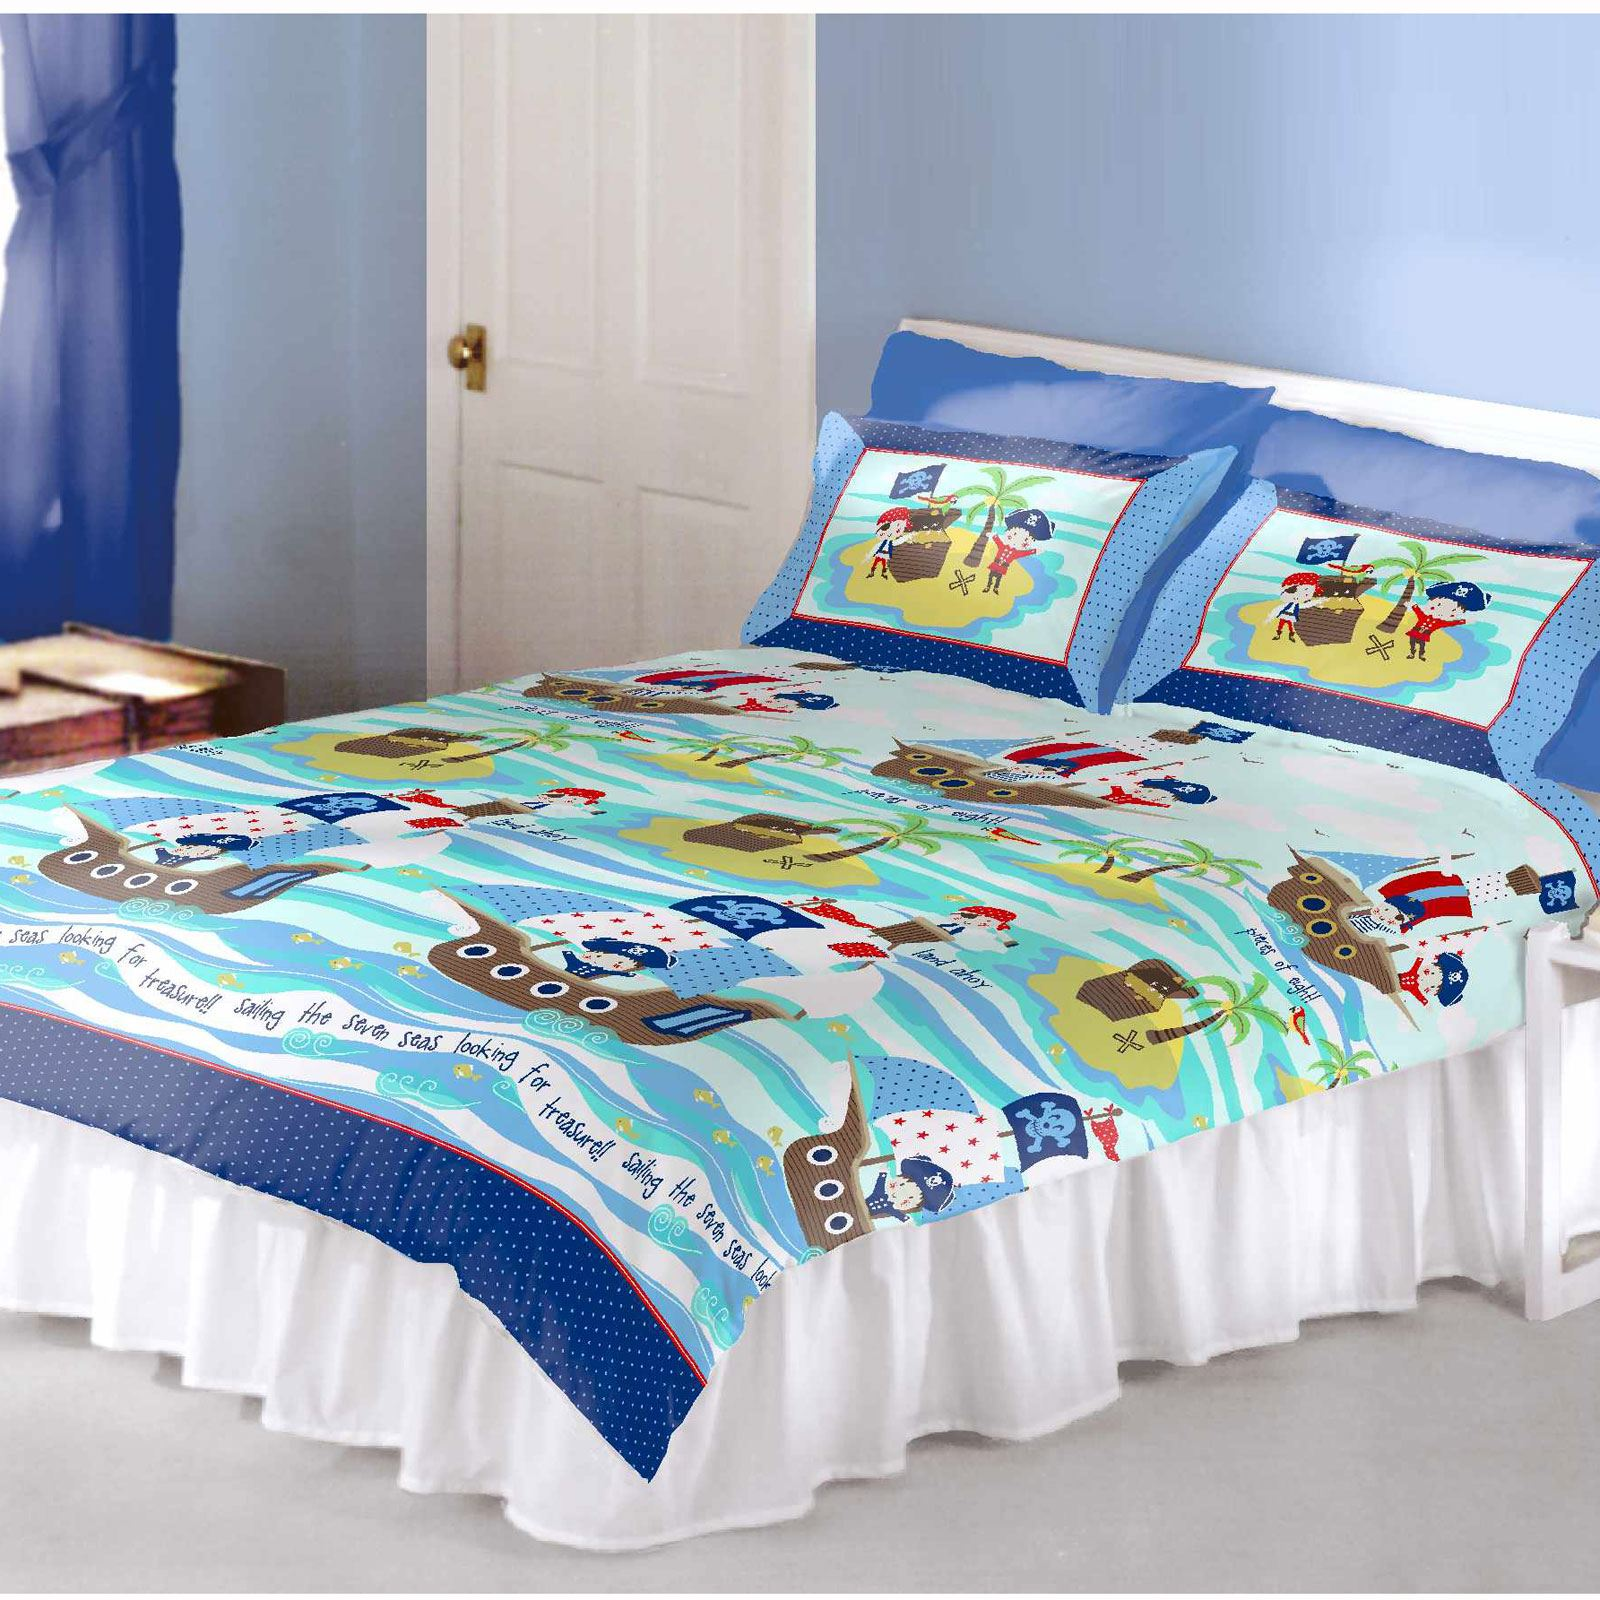 Boys Double Quilt Cover Improve Your Bed Covers Double Skills Bangdodo